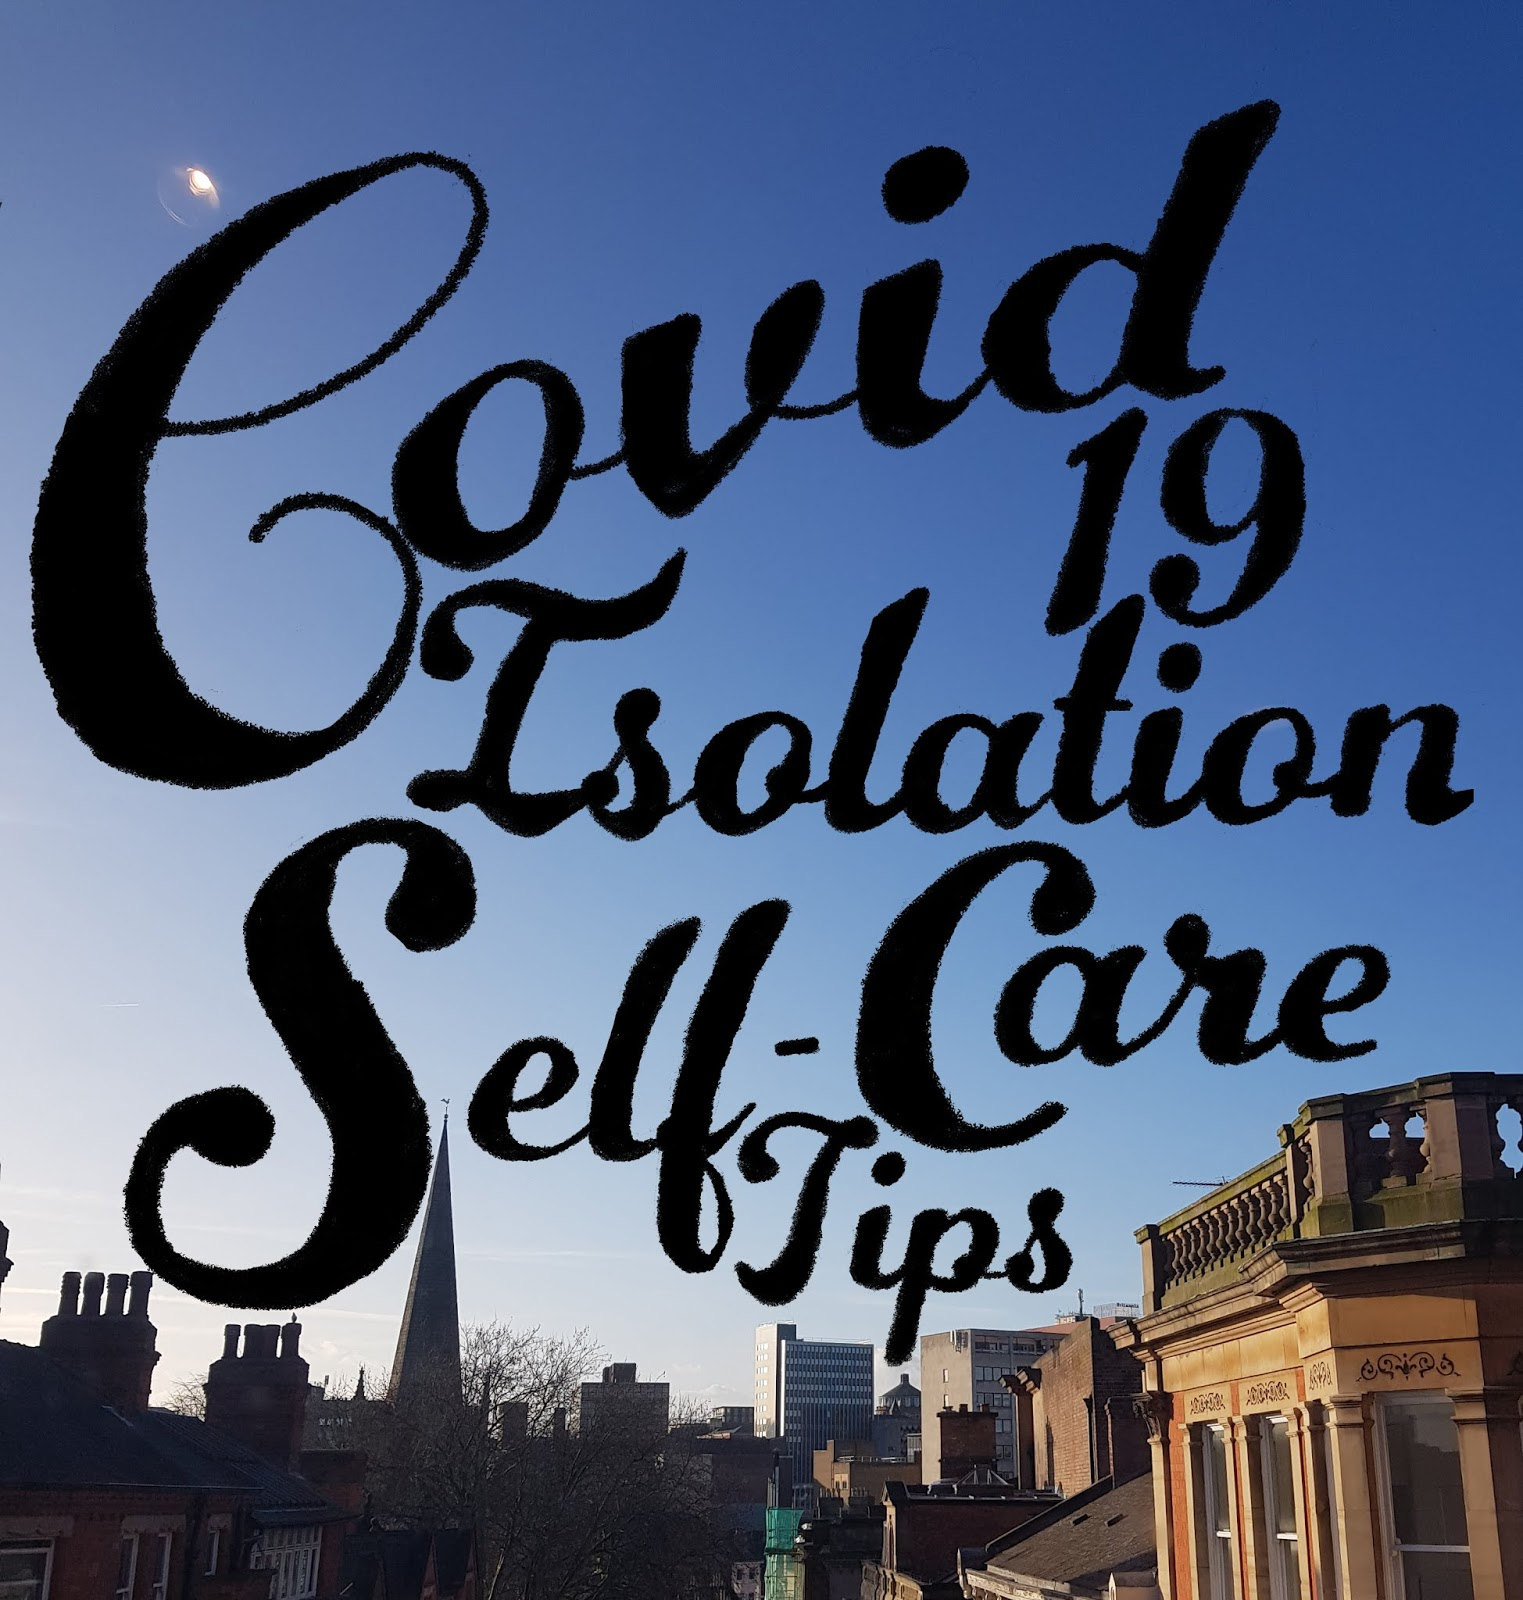 Self Care Tips for Covid 19 Isolation - From Someone Whos Been Stuck Indoors For A While.